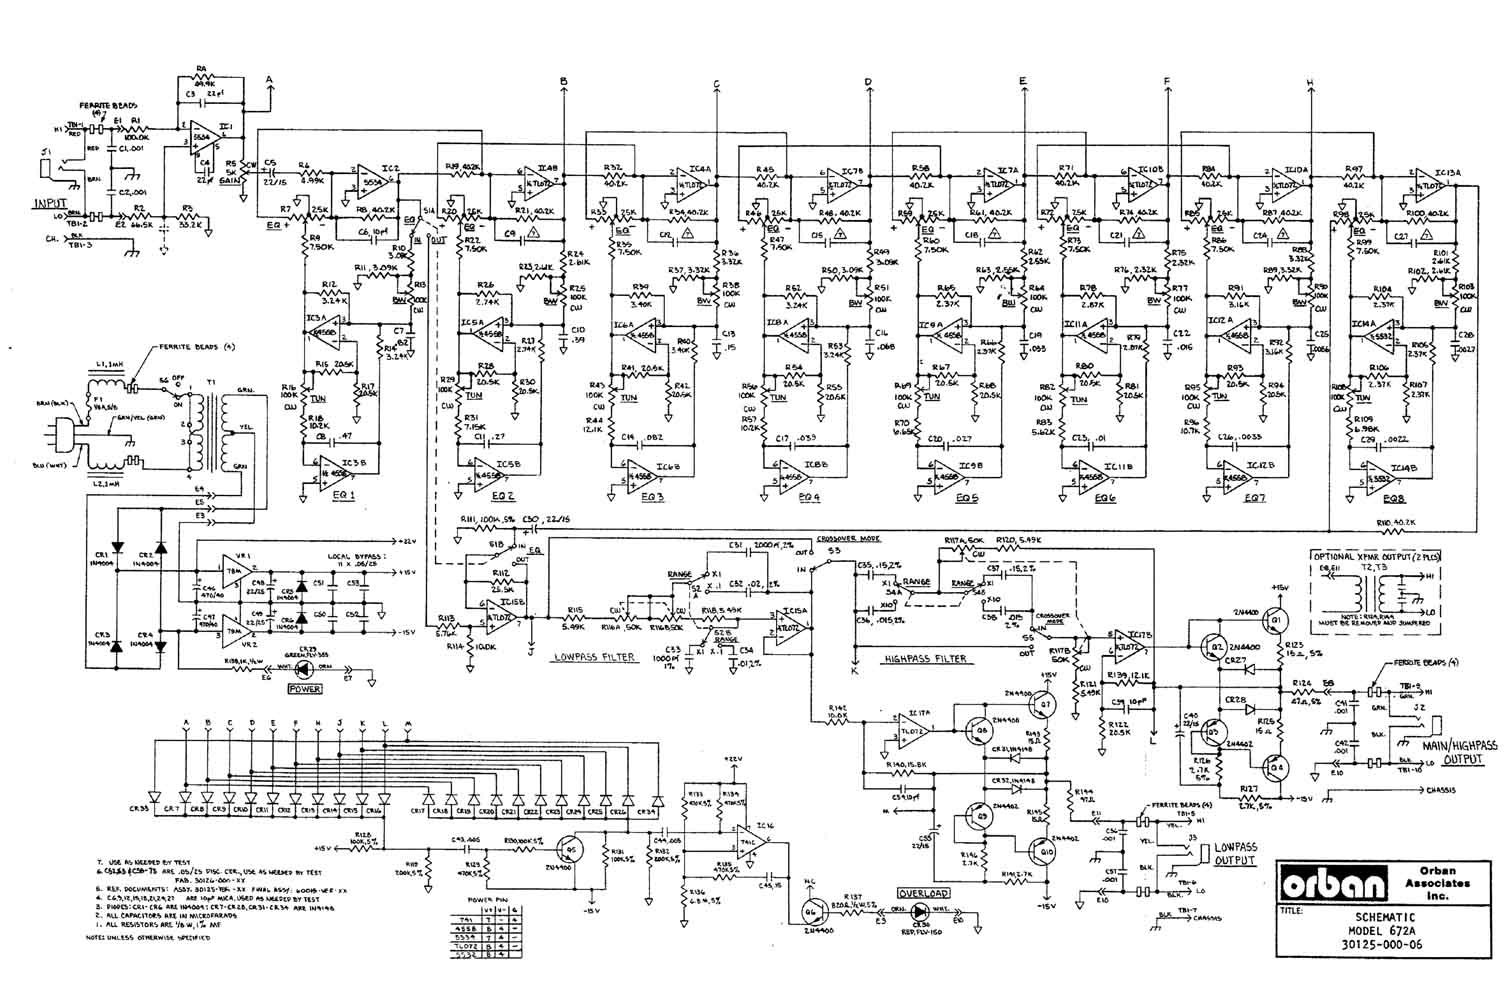 orban 672a equalizer schematic